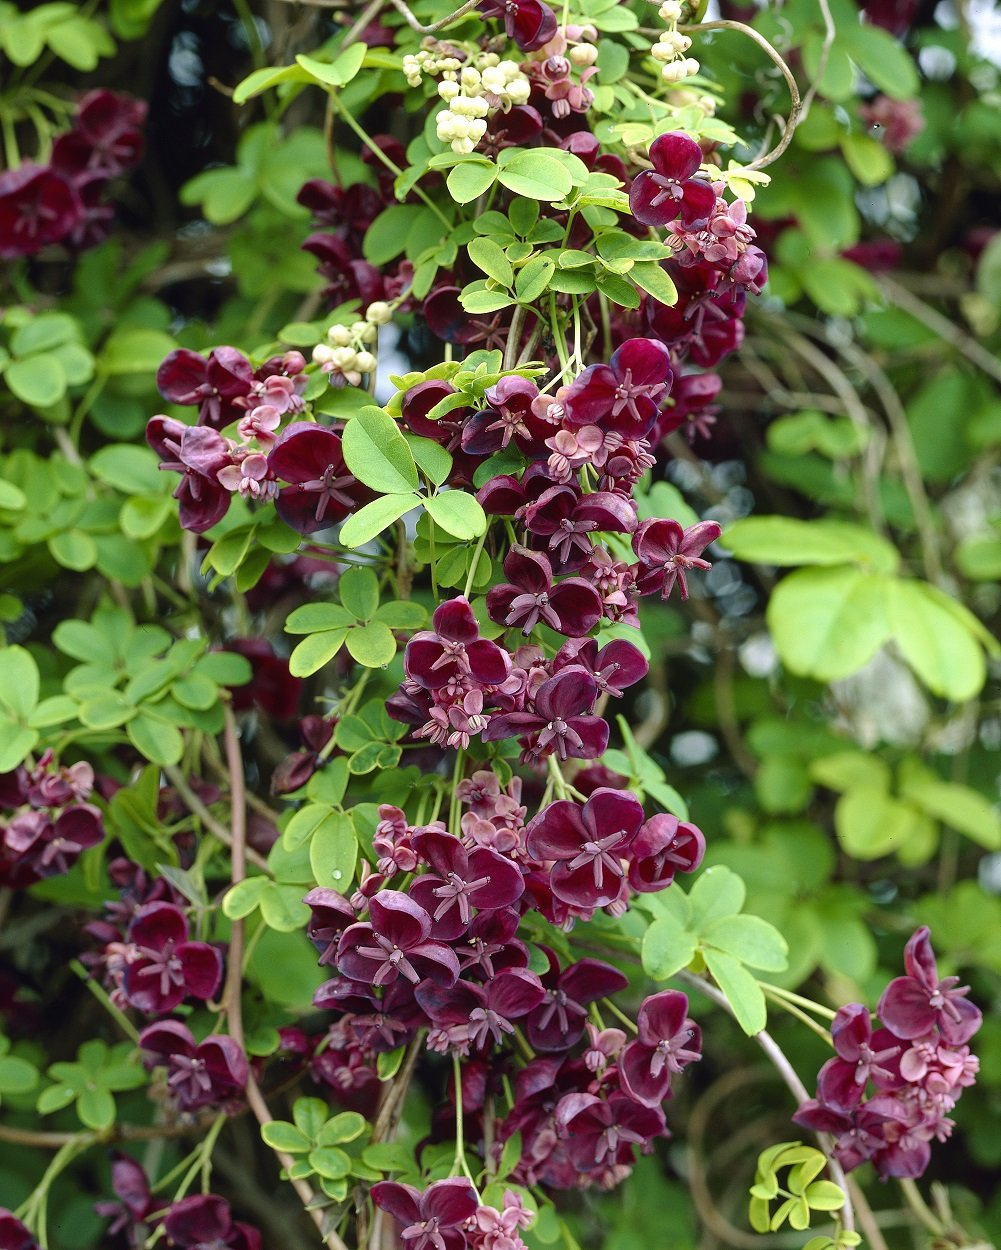 Akebia quinata chocolate vine 1 litre pot UK FREE DELIVERY